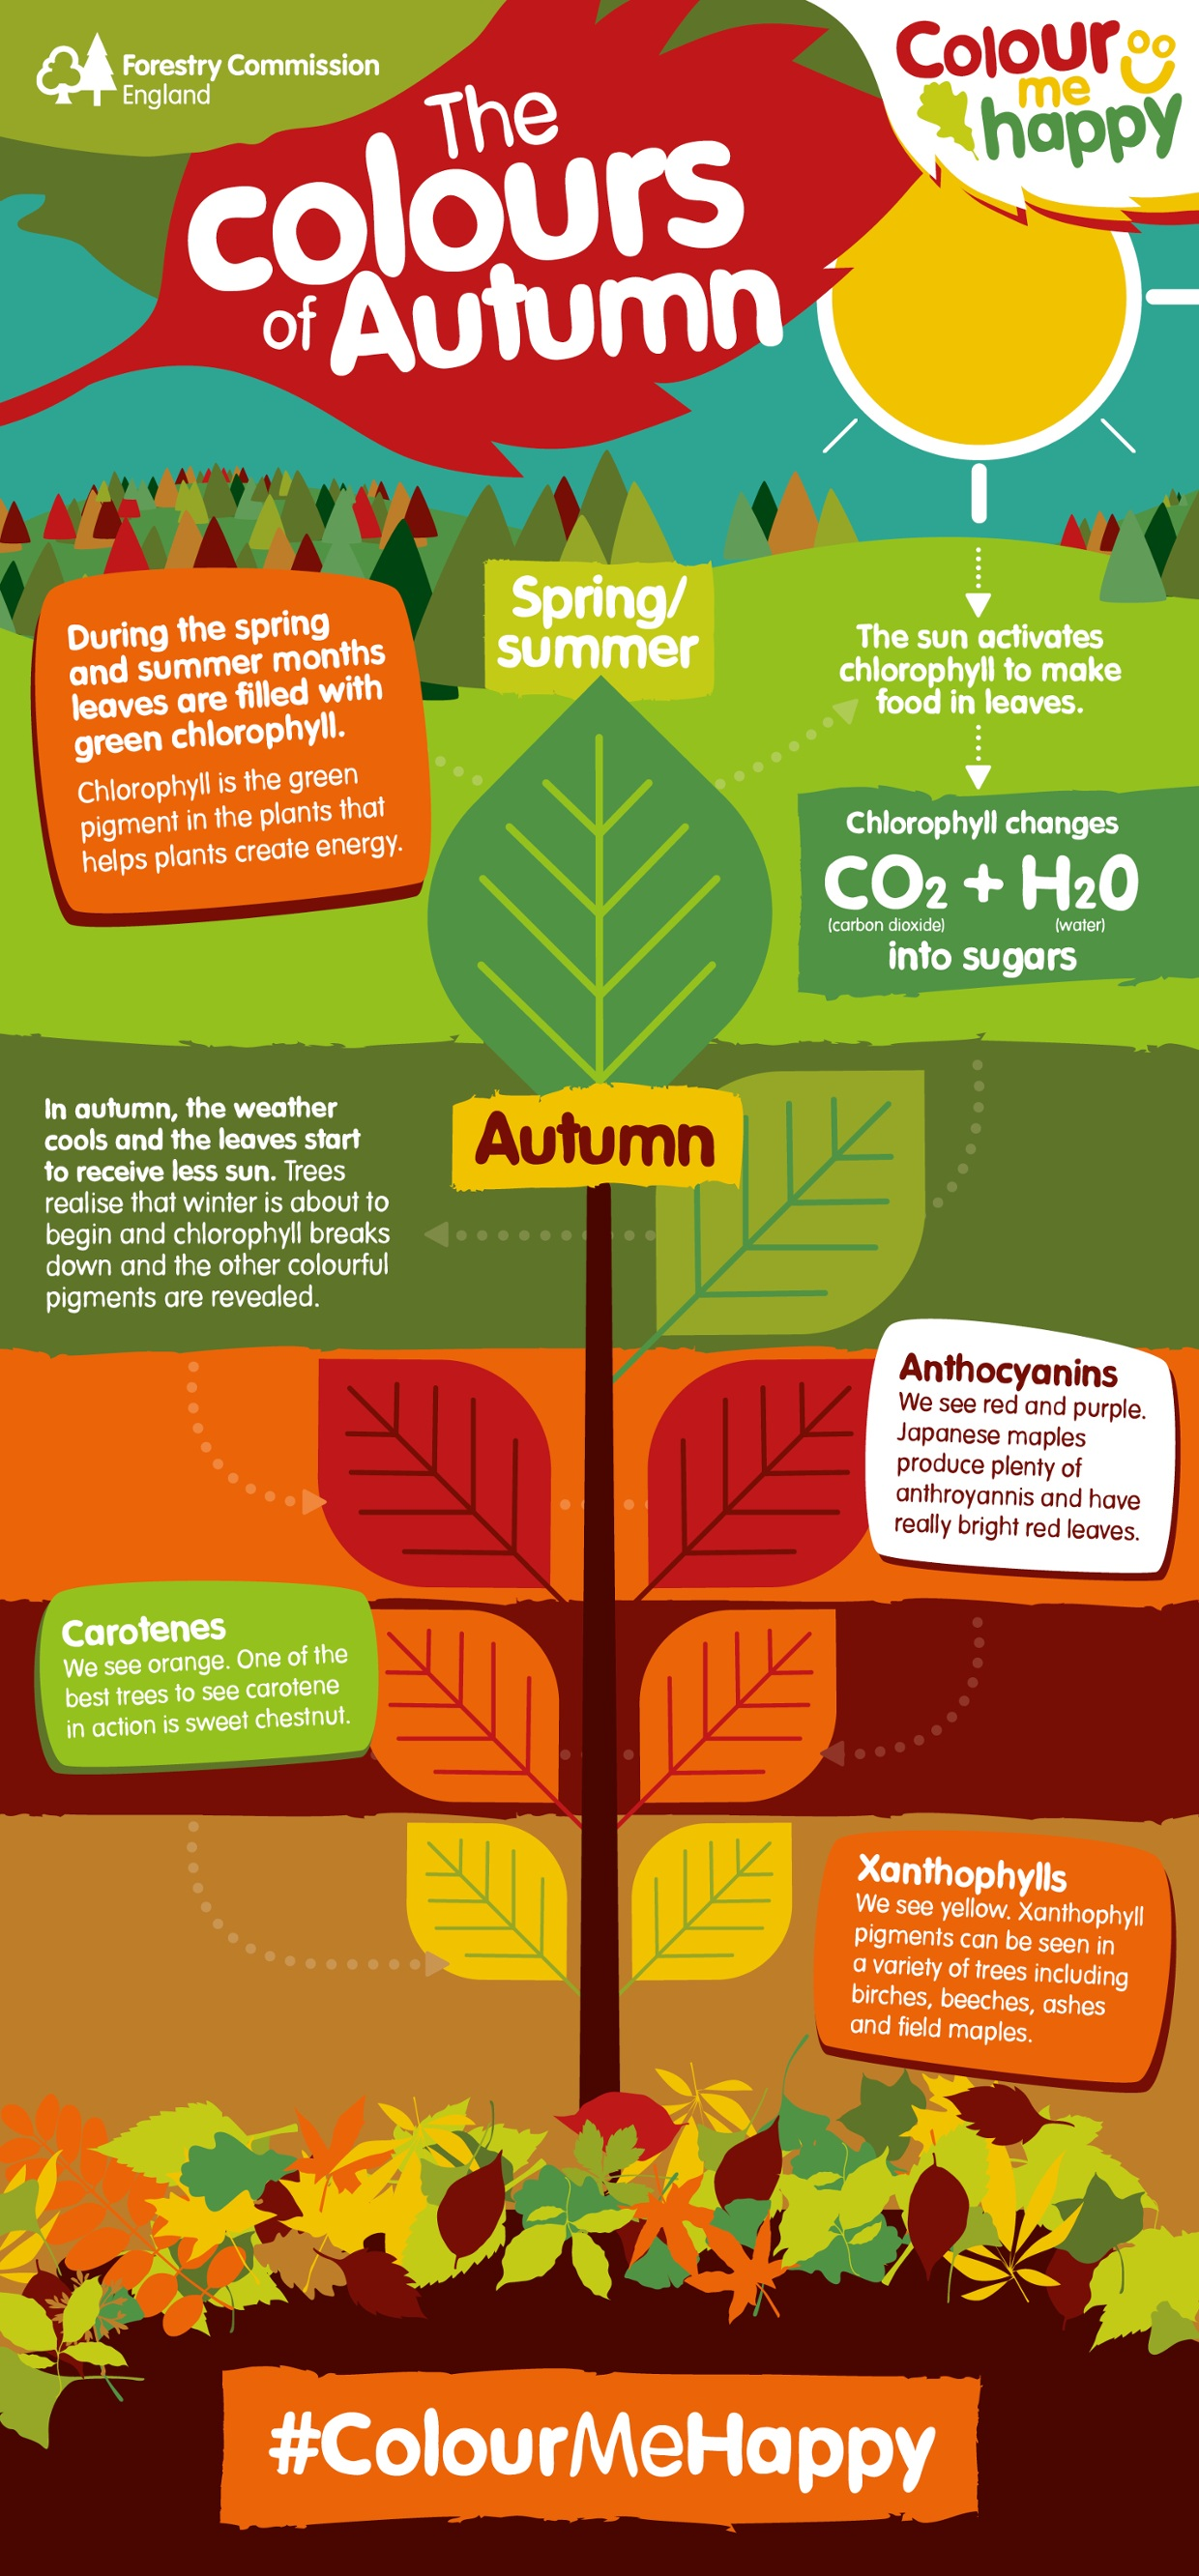 Why do autumn leaves change colour?